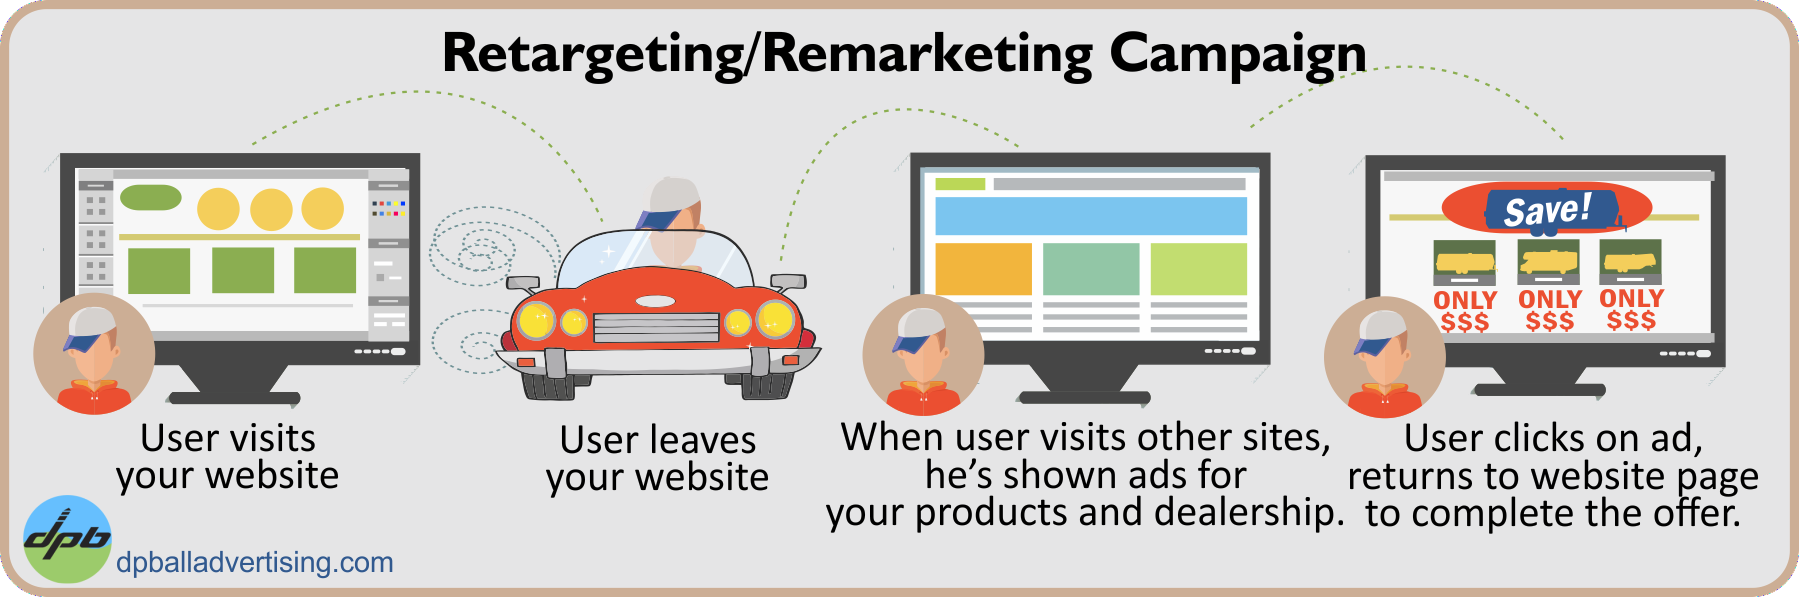 Retargeting / Remarketing Ad Campaign